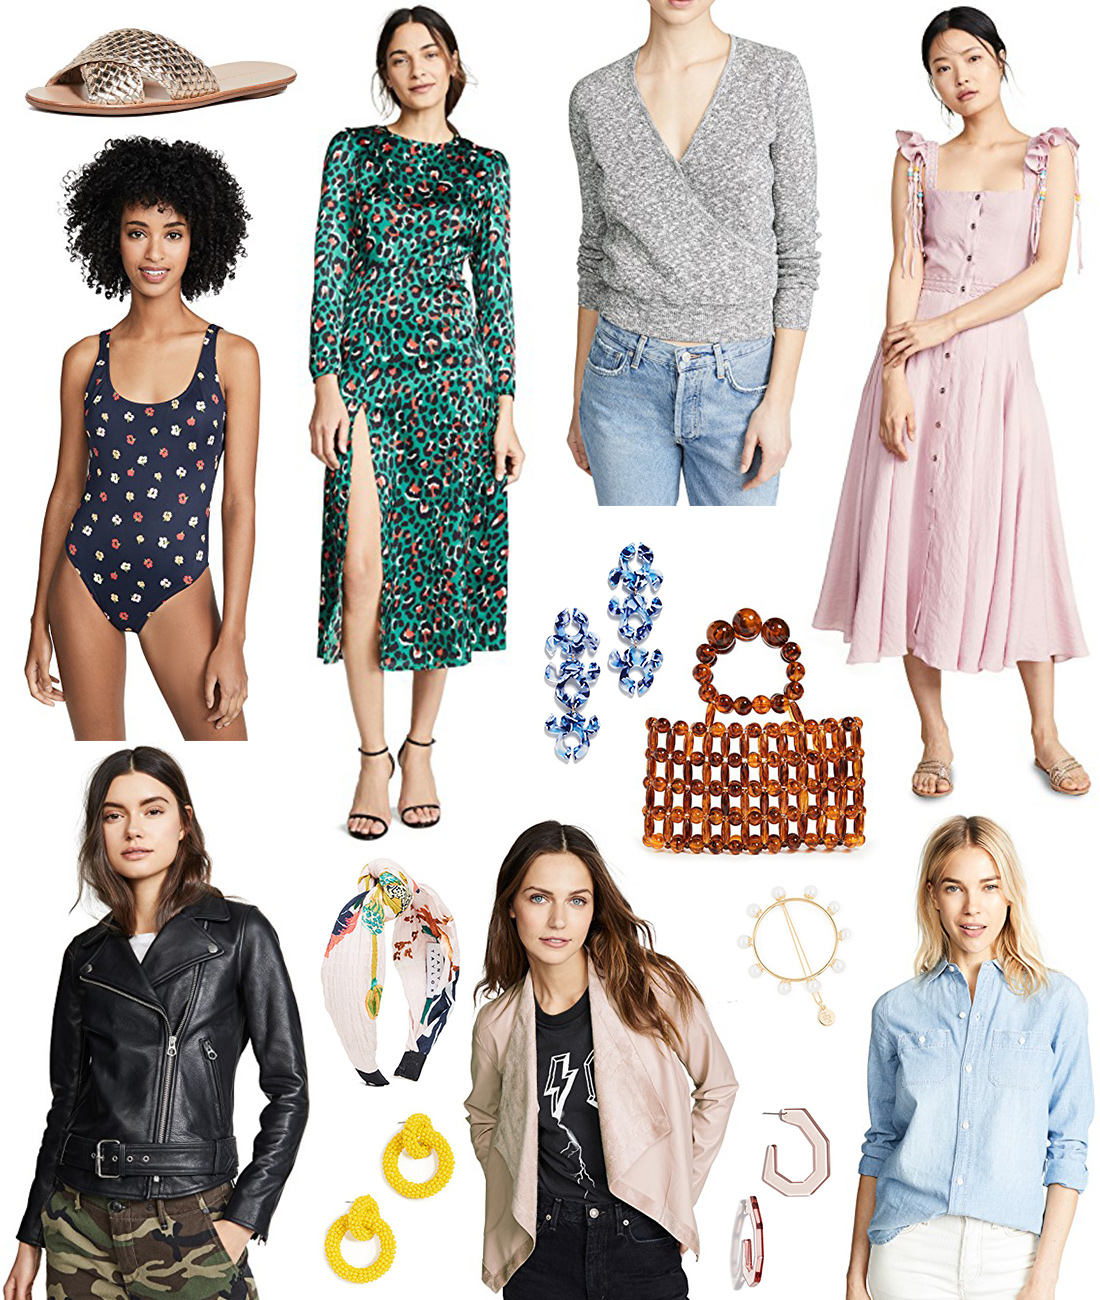 Things to Know - Shopbop's Big Sale is in effect!